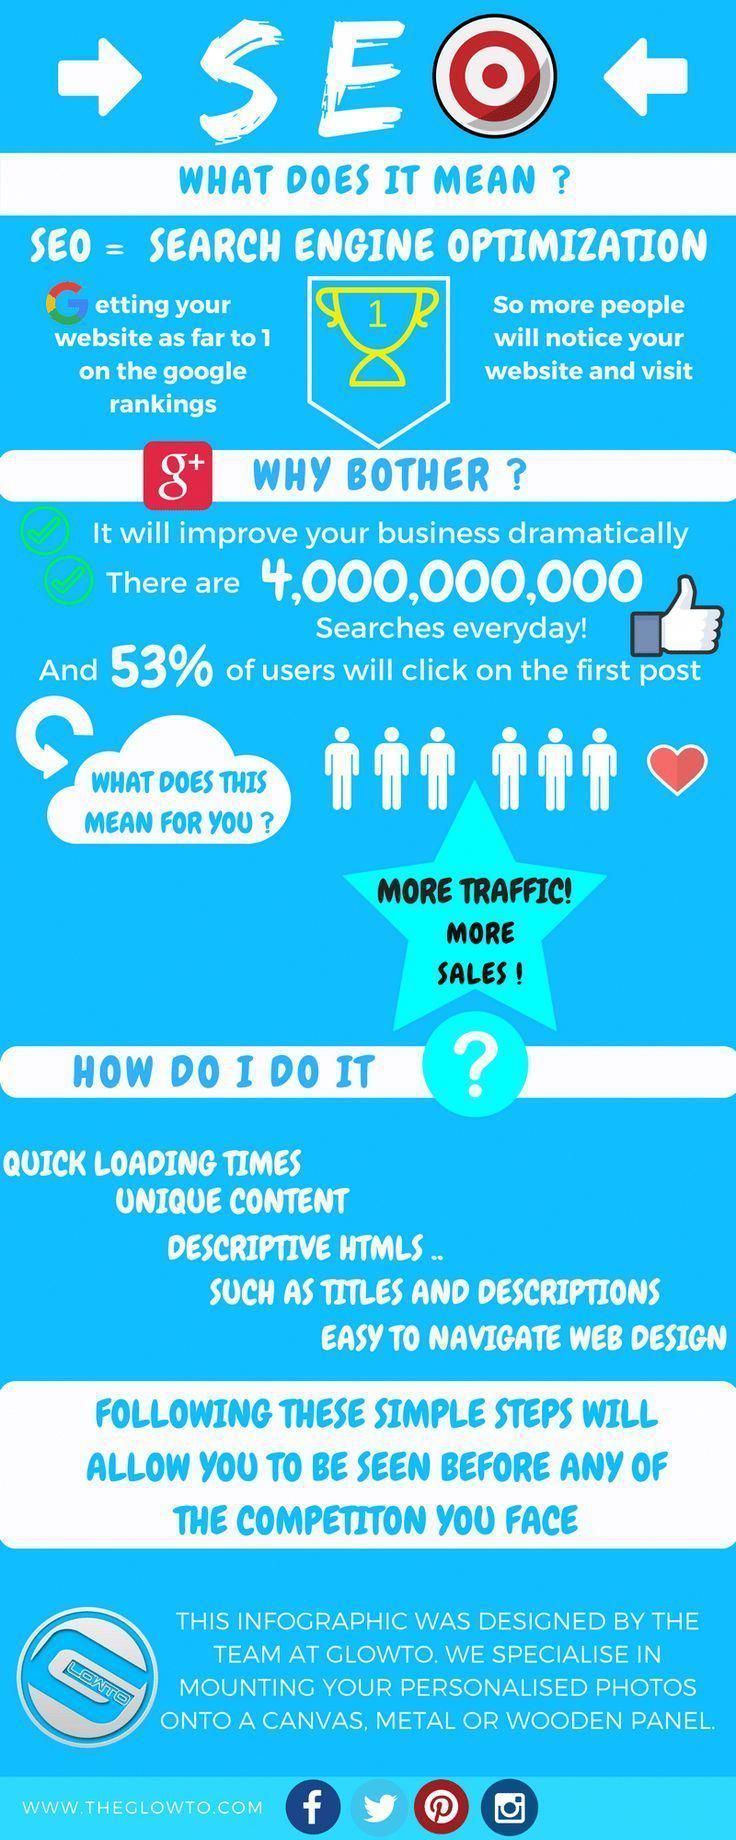 This is an infographic on the topic of SEO and why it is